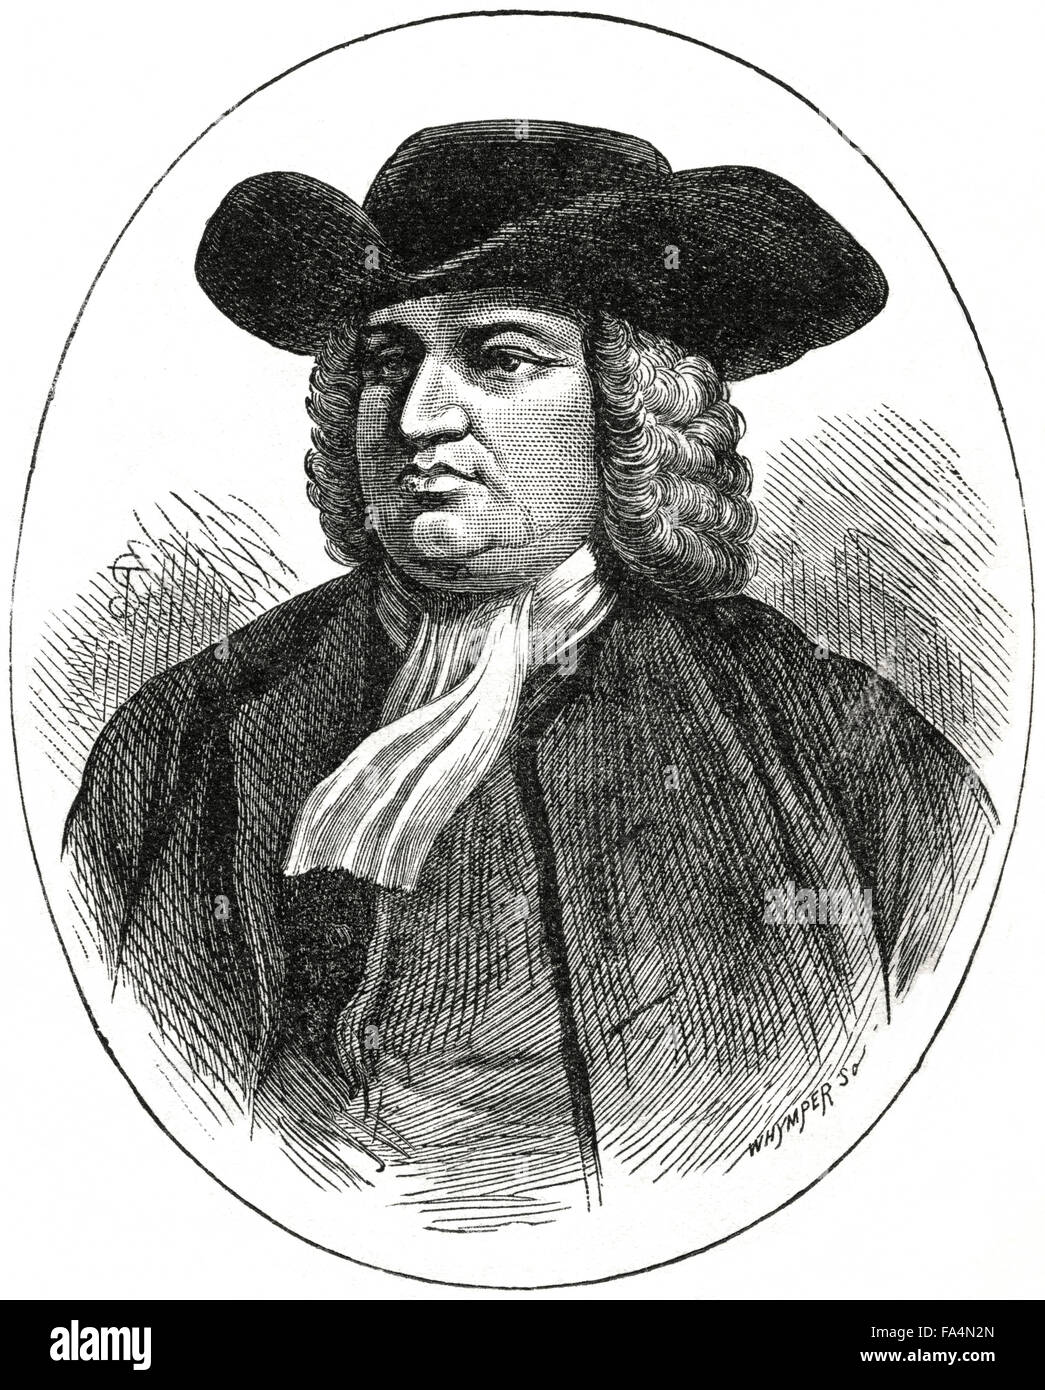 """William Penn (1644-1718), Founder of English Colony of Pennsylvania, Book Illustration from """"Indian Horrors or Massacres Stock Photo"""